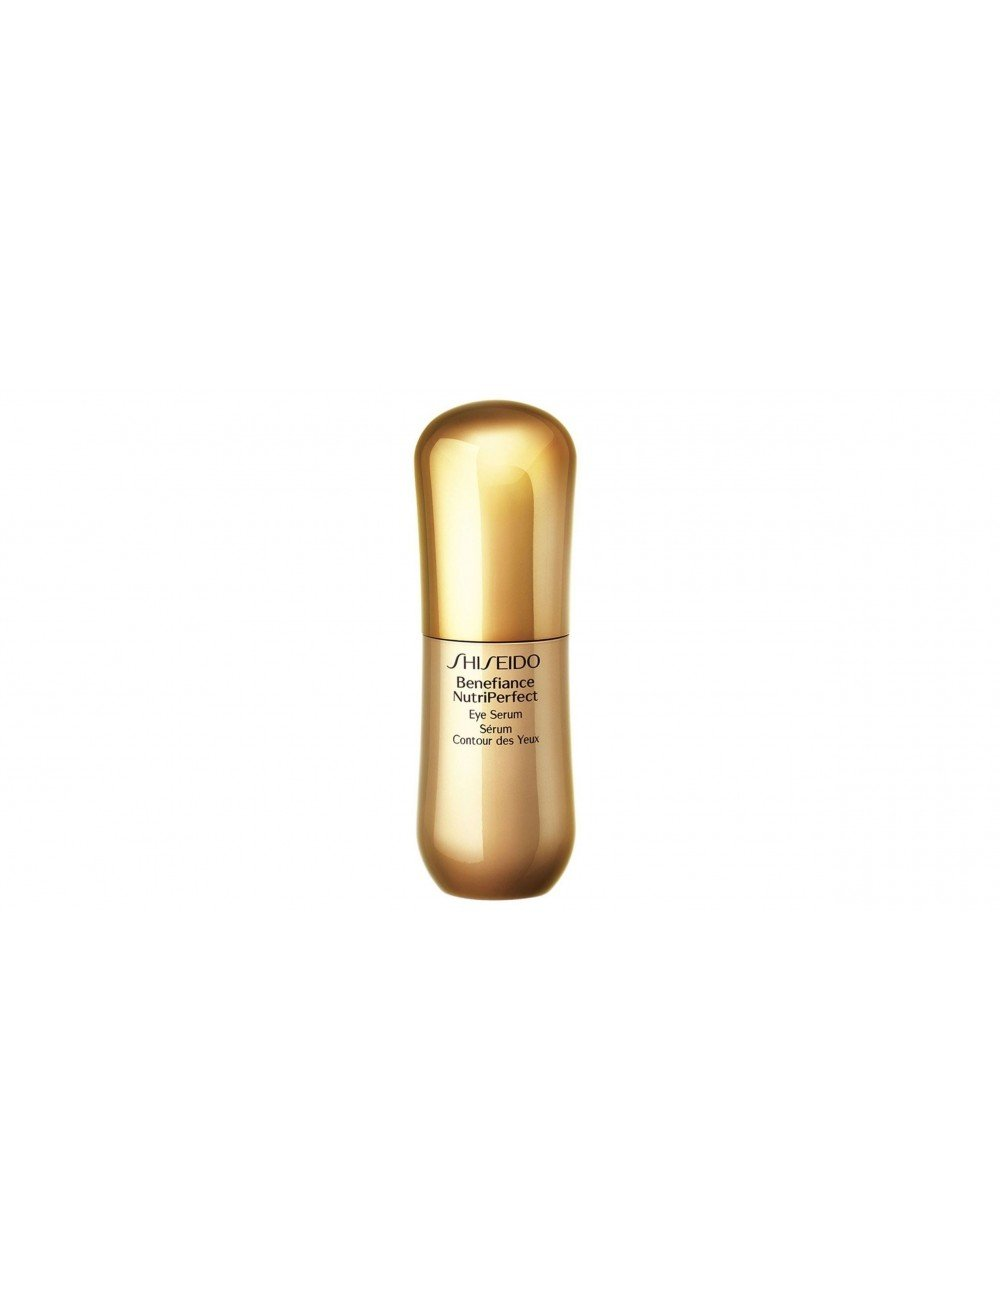 SHISHEIDO BENEFICIANCE NUTRI PERFECT EYE SERUM 15ML